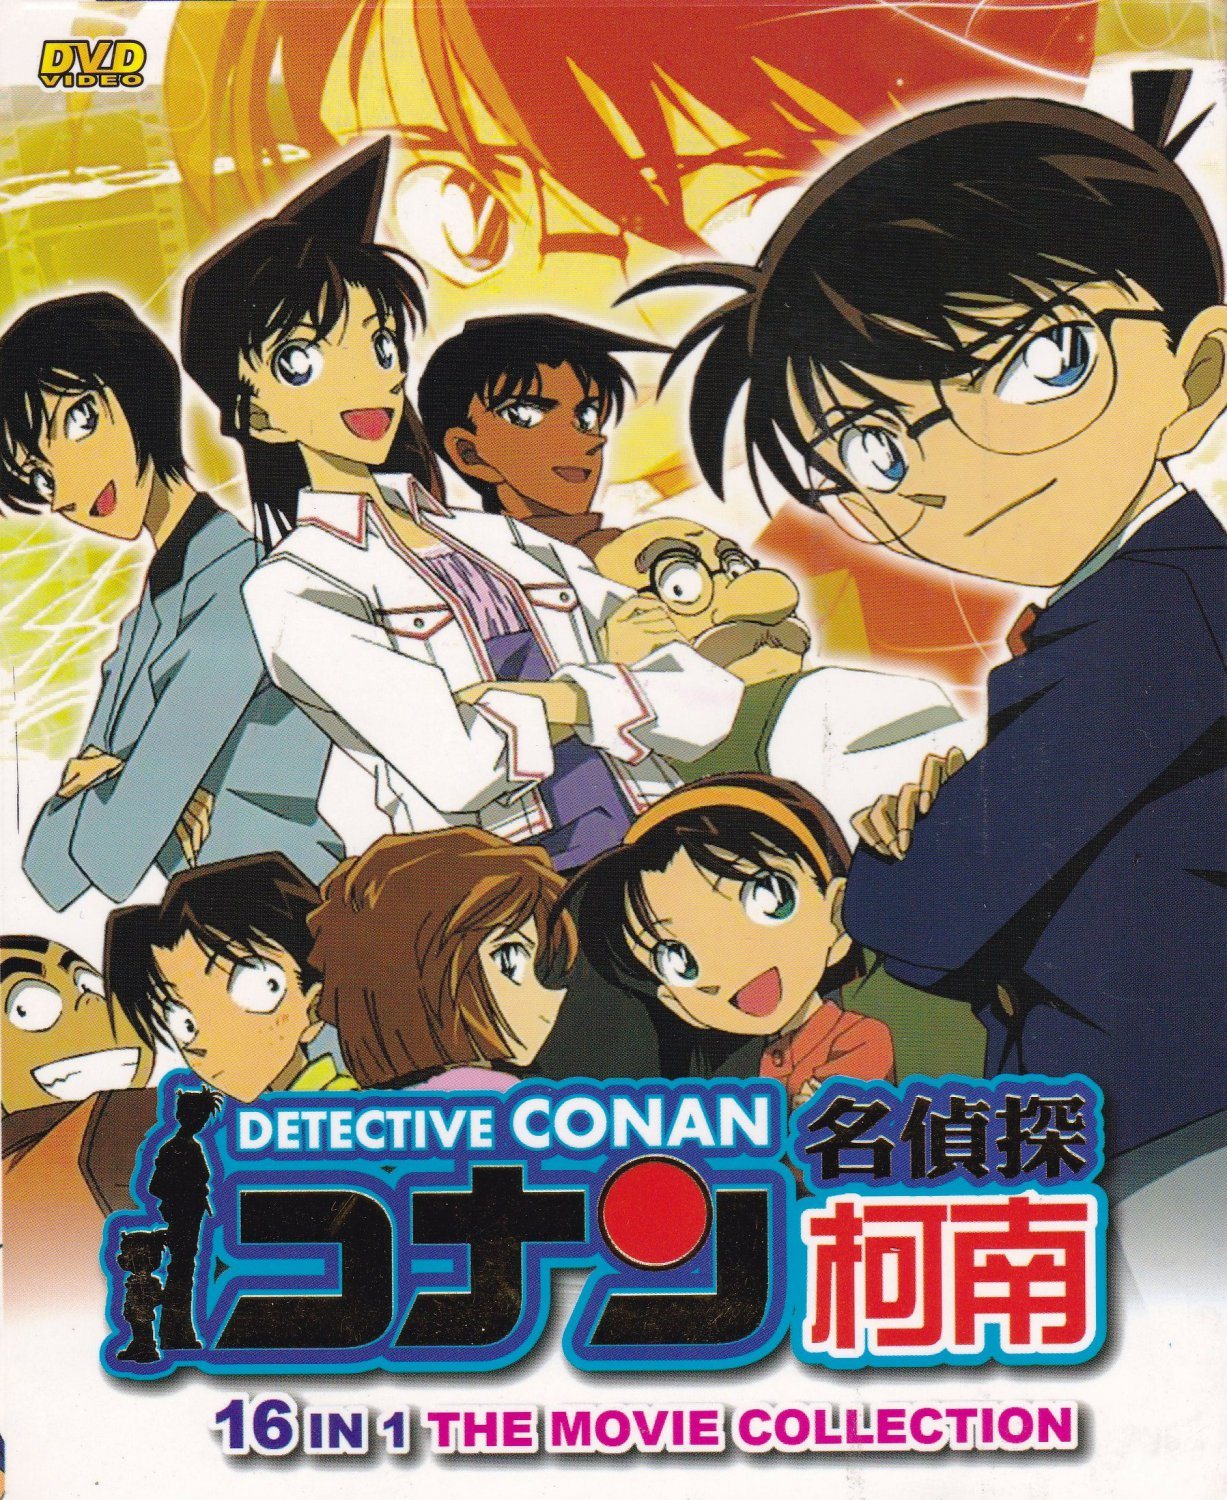 WATCH DETECTIVE CONAN MOVIE 3 THE LAST MAGICIAN OF THE